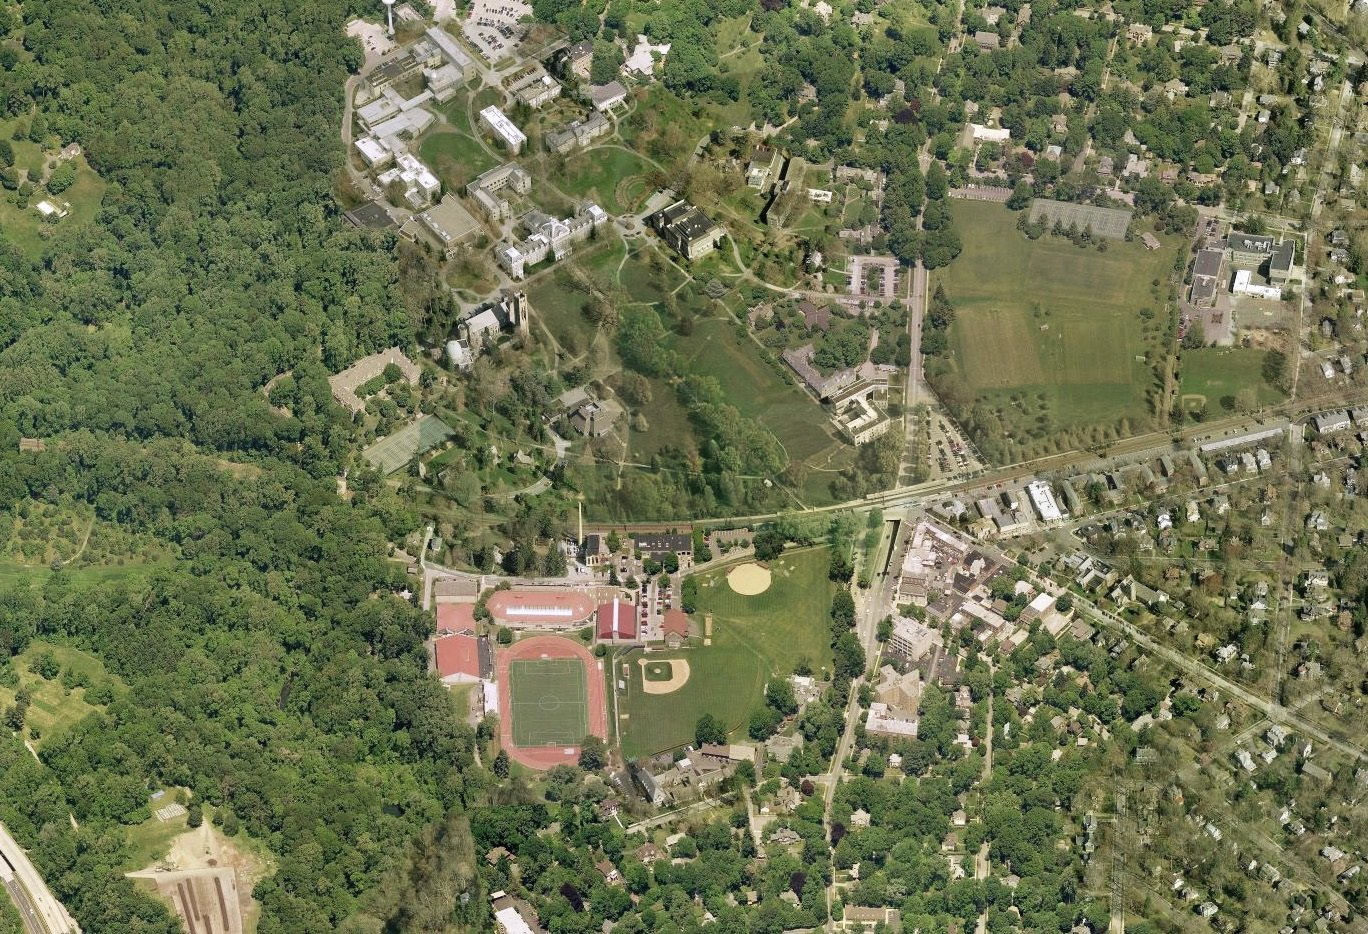 Birds-eye view of Swarthmore campus